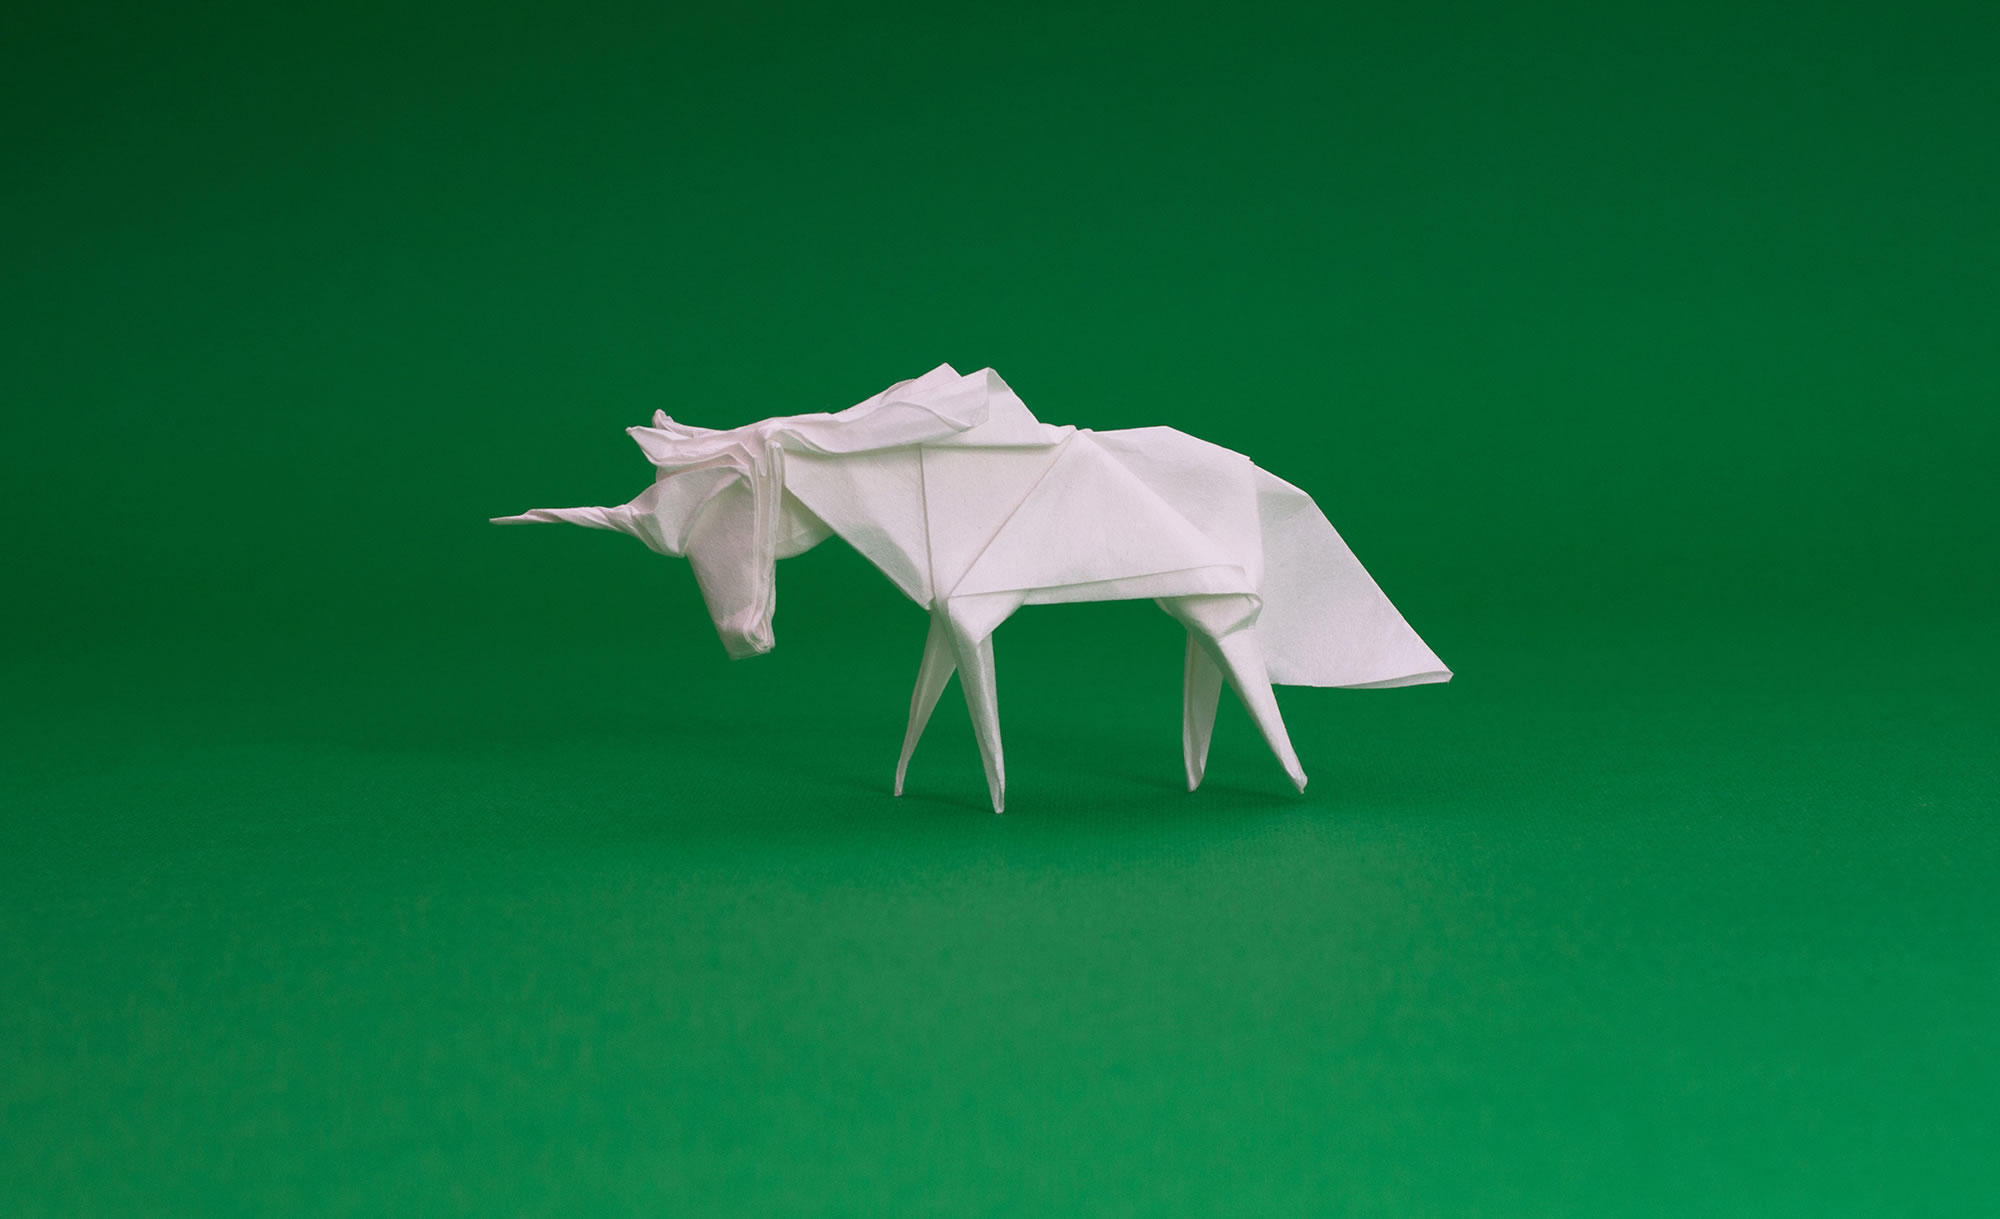 origami unicorn, white horse